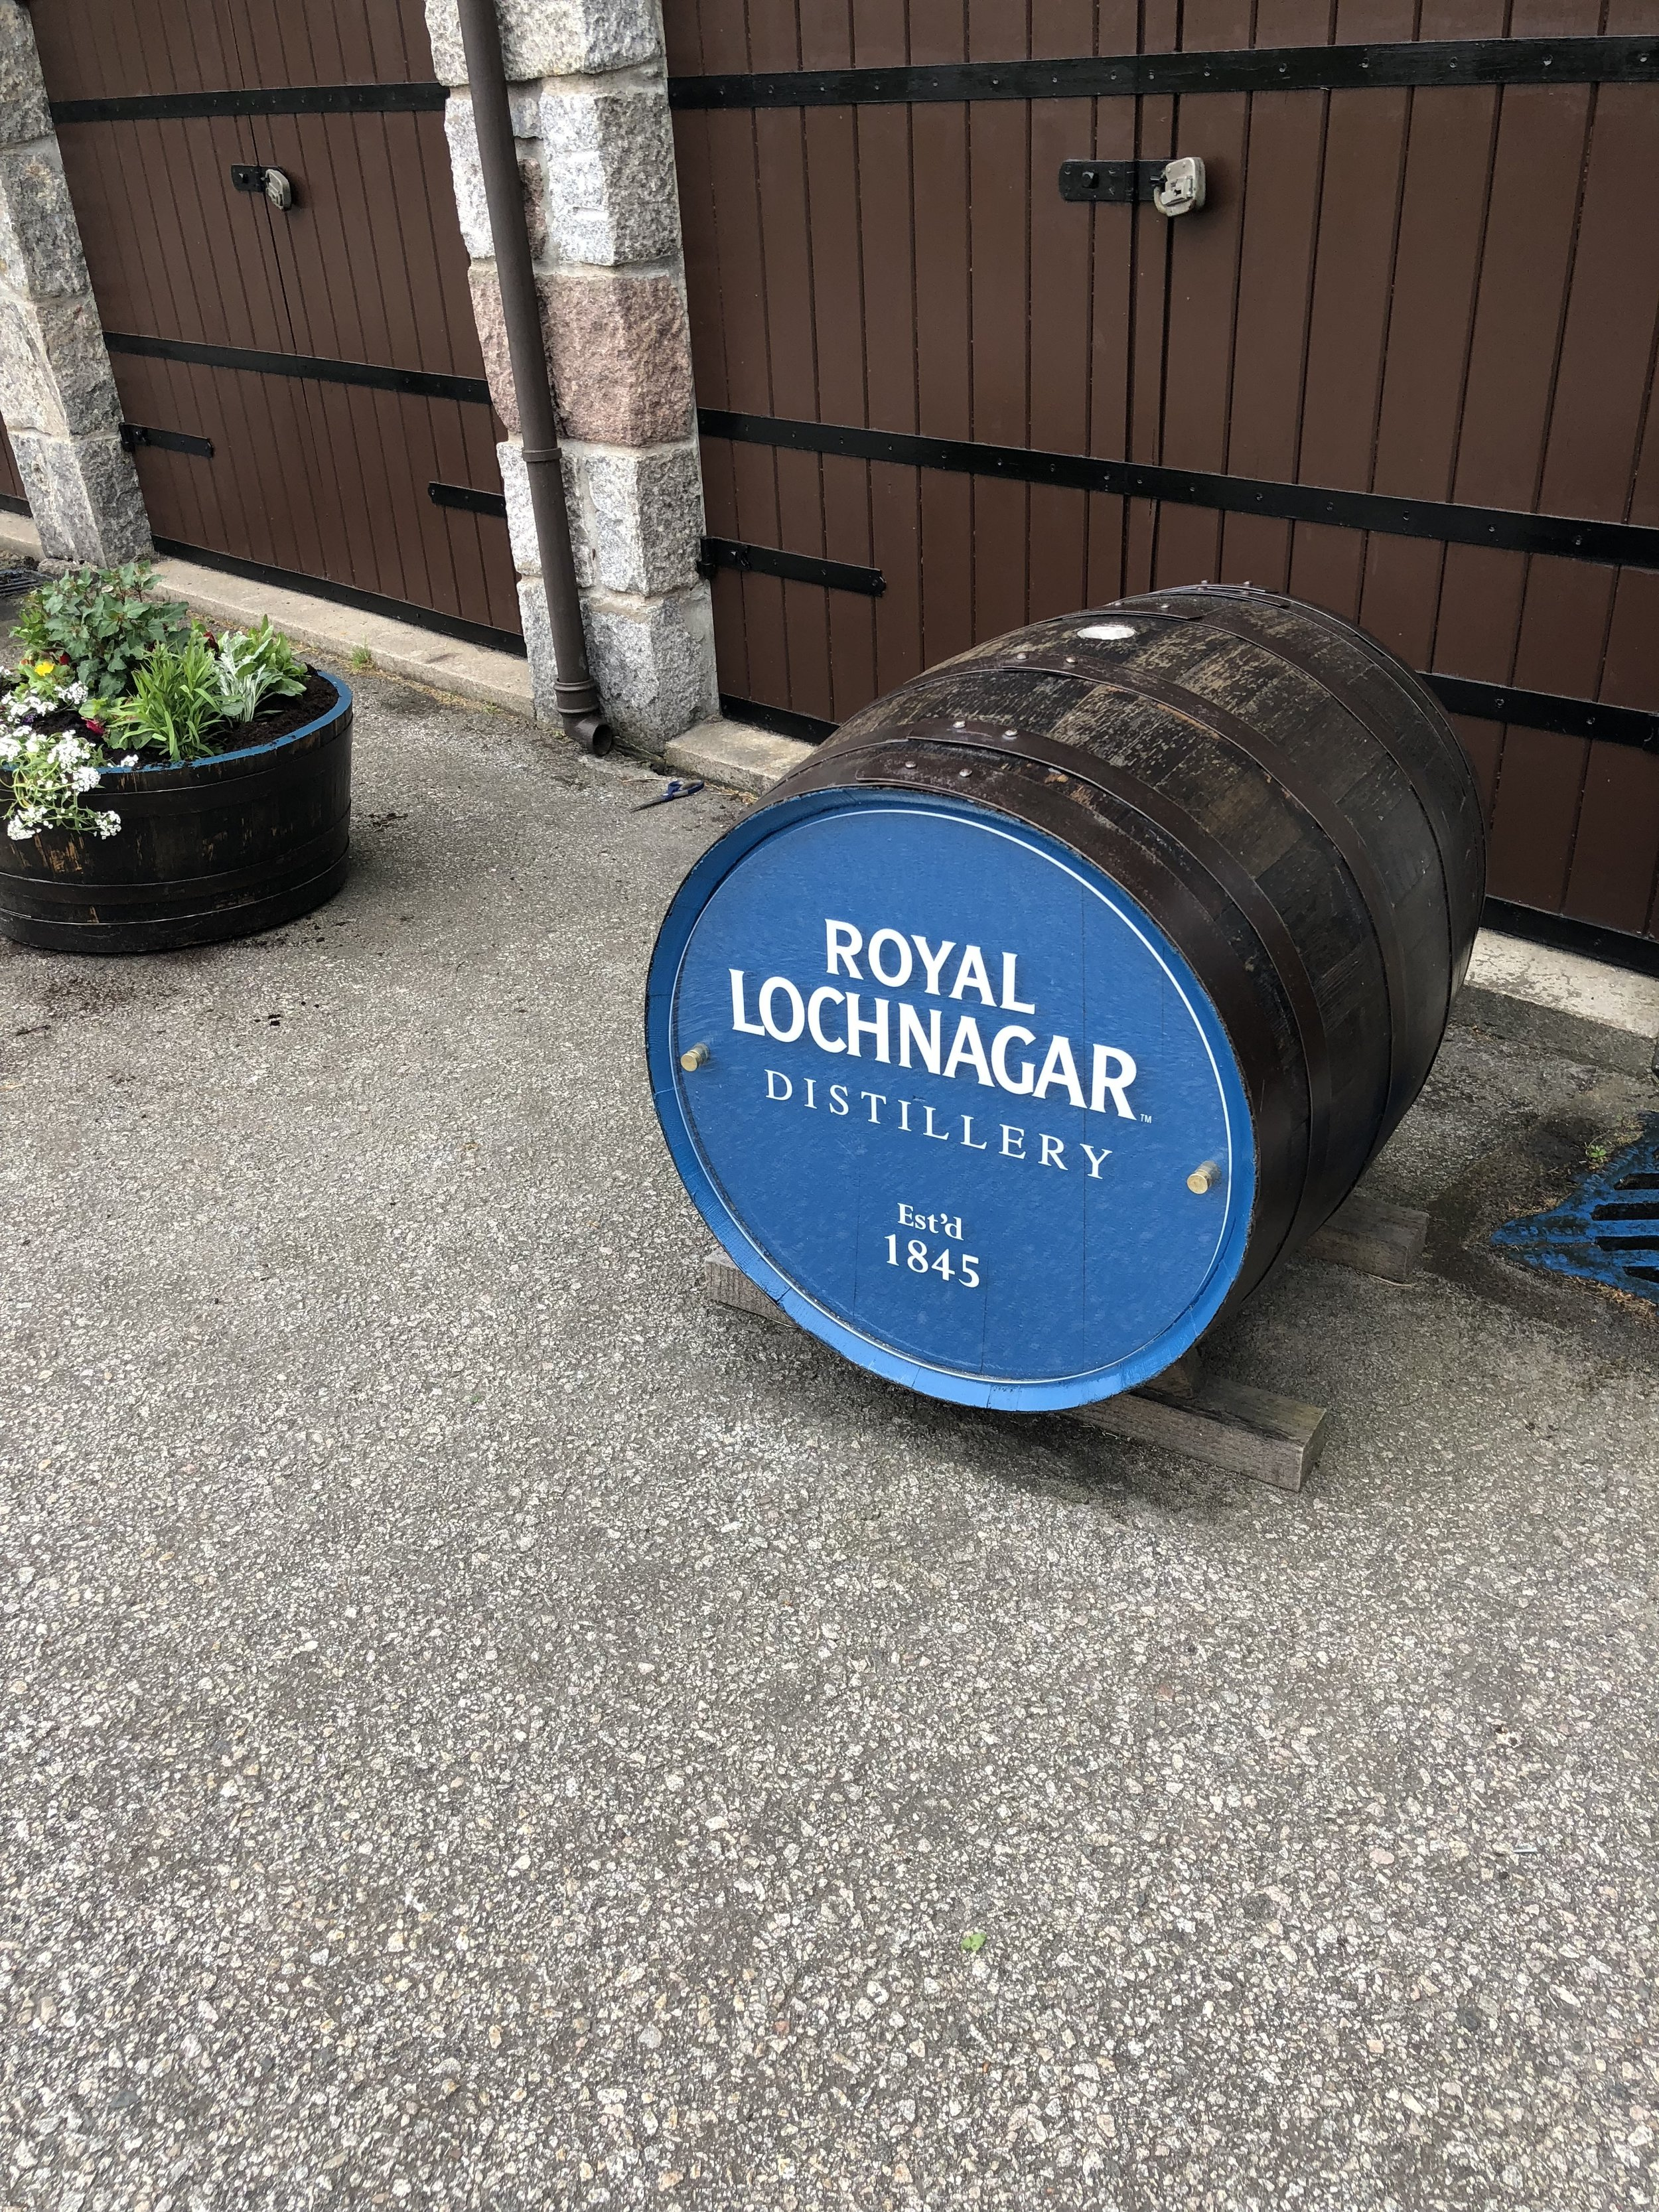 I also toured the Royal Lochnagar Distillery!